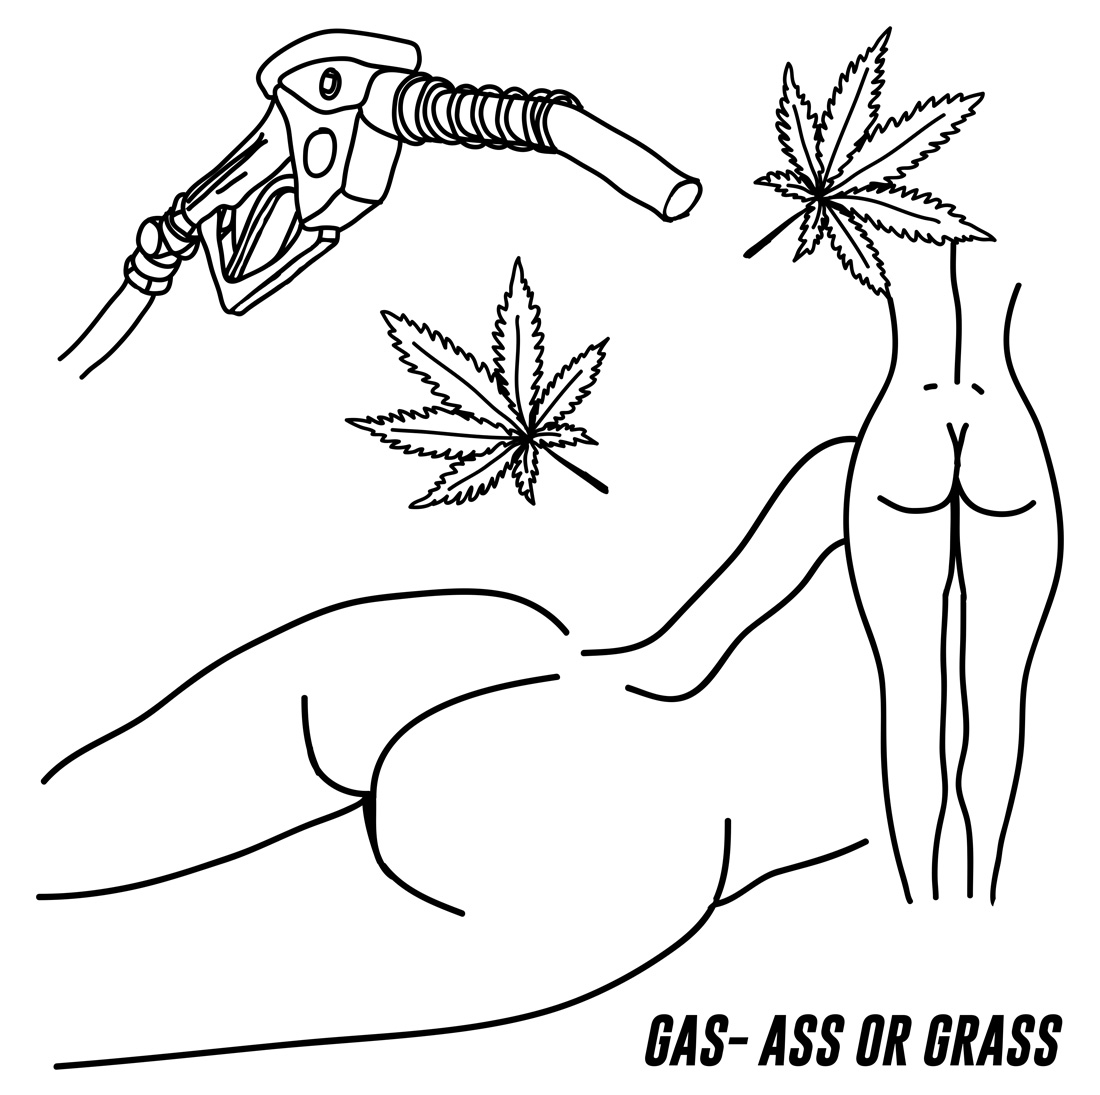 gas-ass-grass.jpg